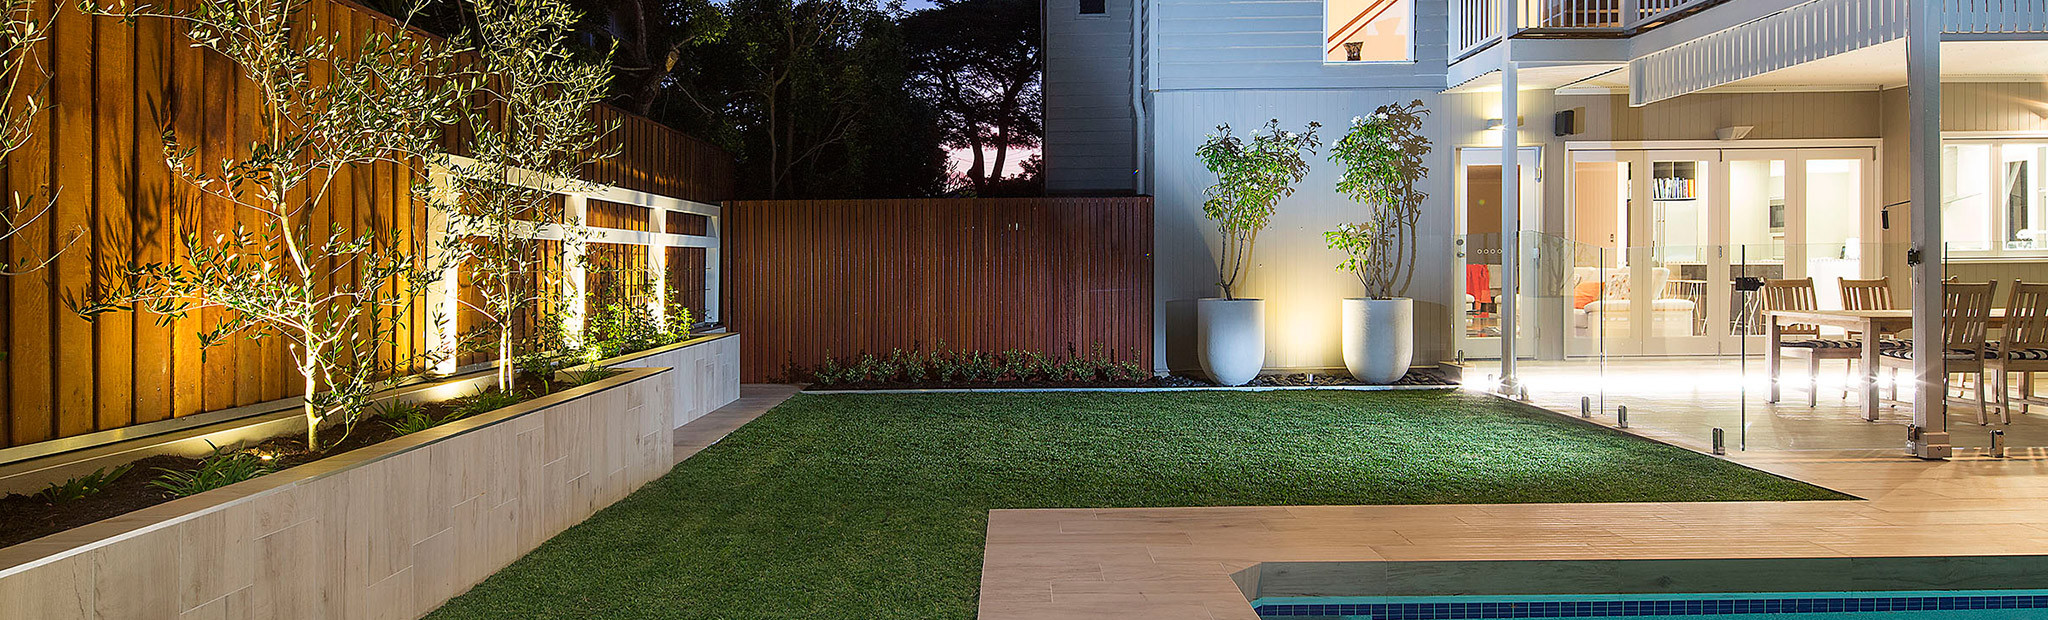 Landscape brisbane landscaping design for Garden designs brisbane